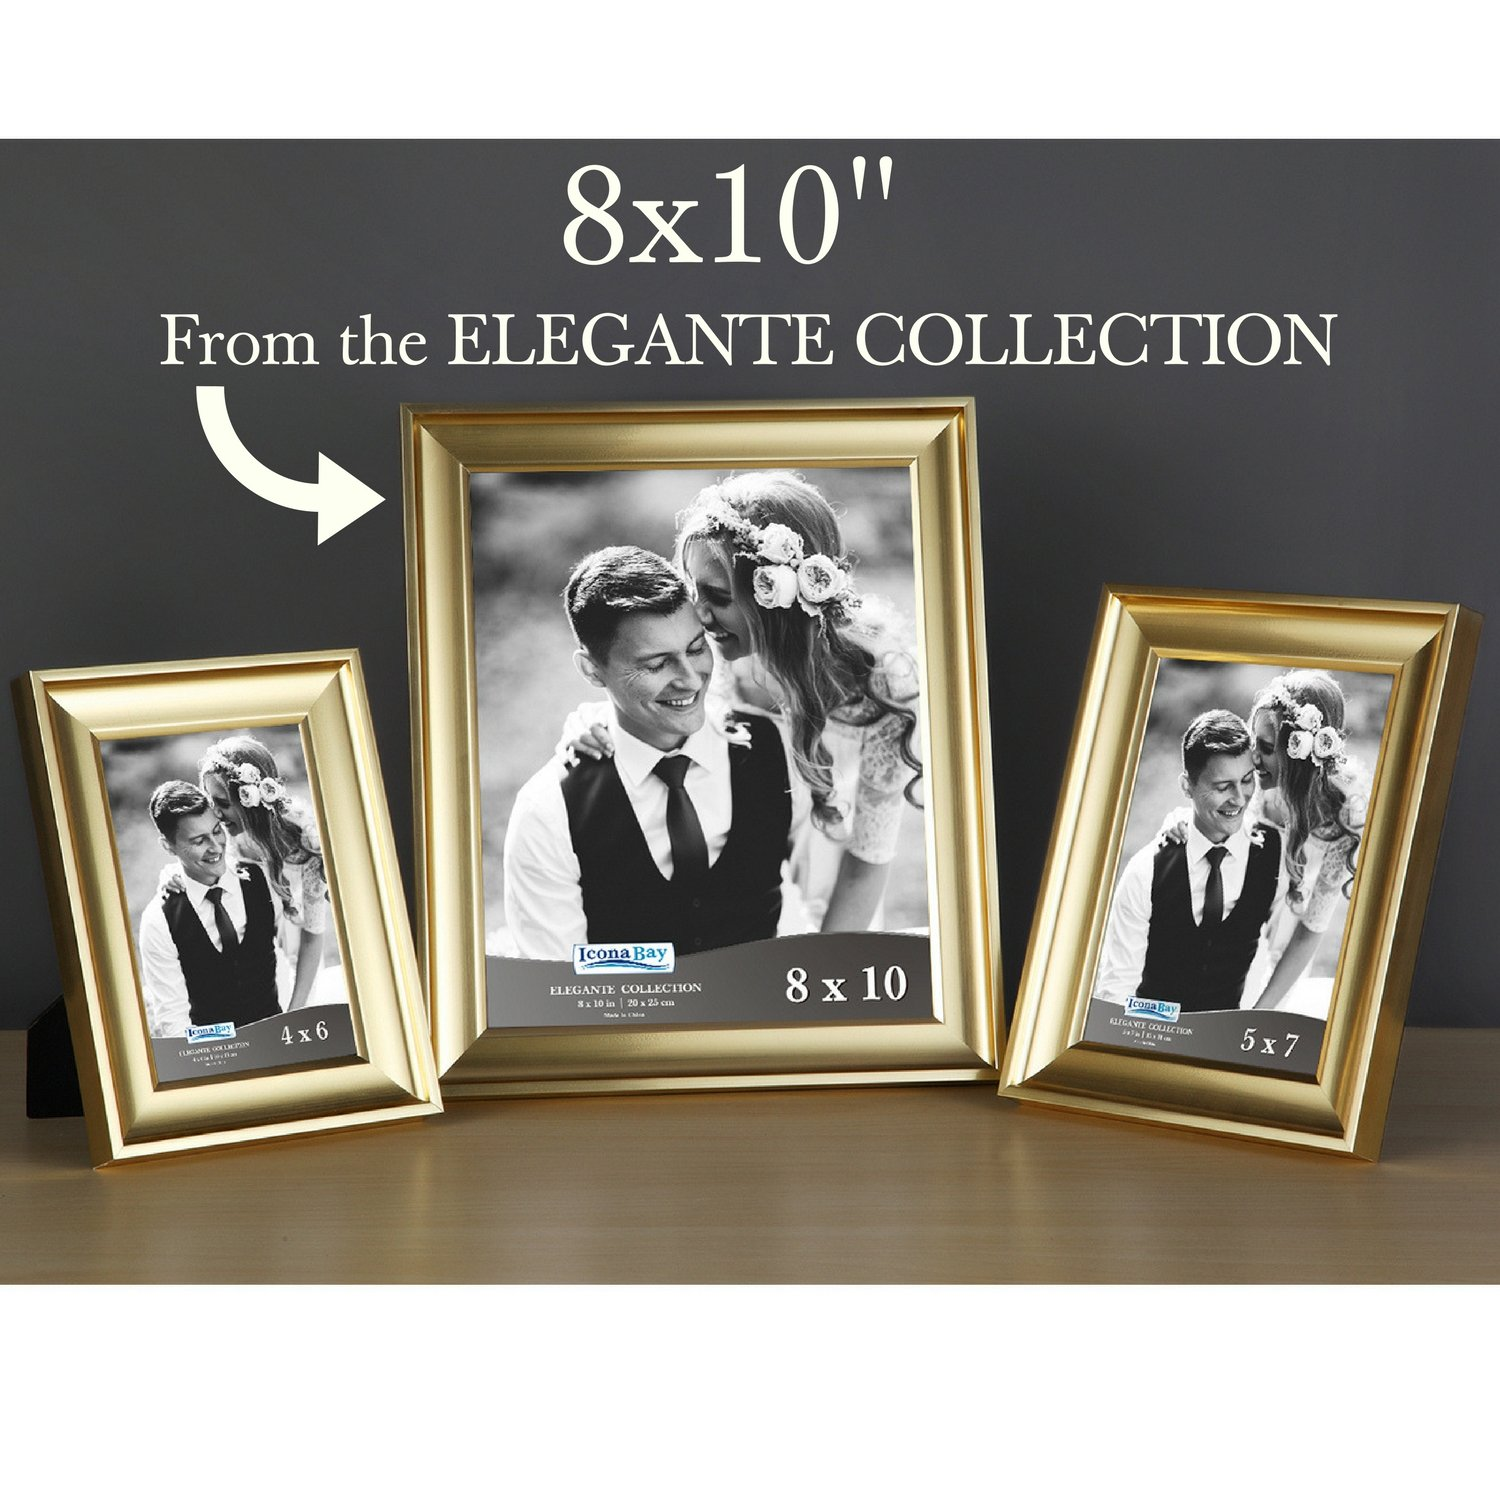 Icona Bay 8x10 Picture Frame (6 Pack, Gold), Gold Photo Frame 8 x 10, Wall Mount or Table Top, Set of 6 Elegante Collection by Icona Bay (Image #8)